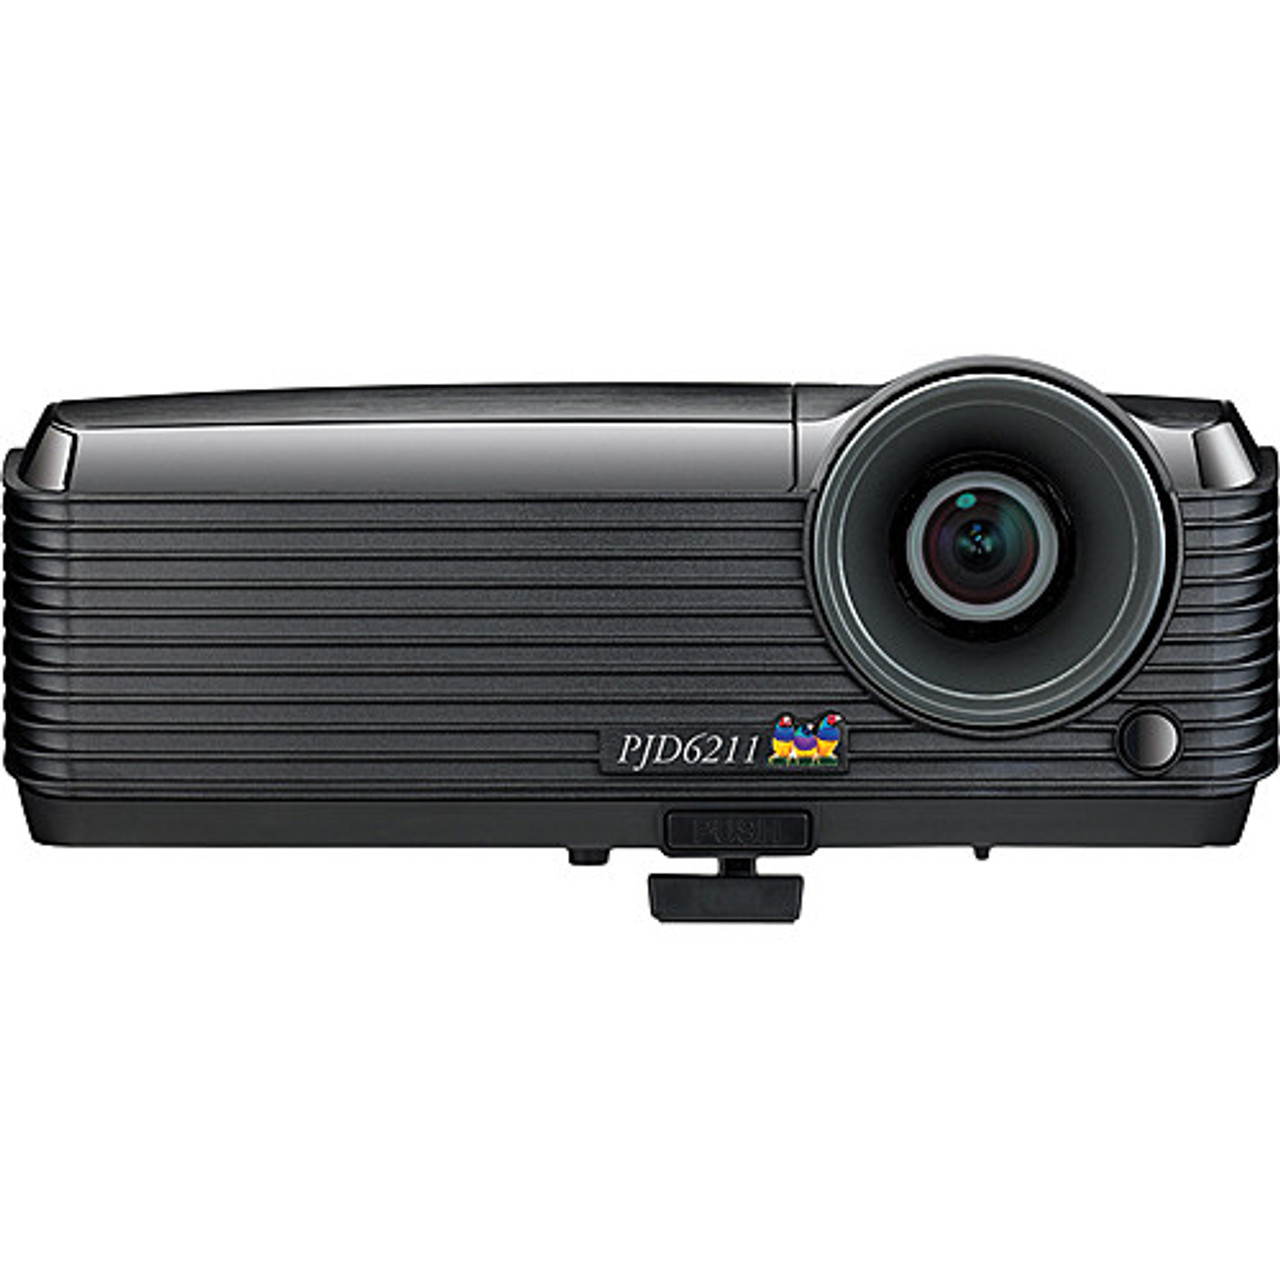 ViewSonic PJD6211-S 2500 Lumens XGA DLP Projector - Certified Refurbished